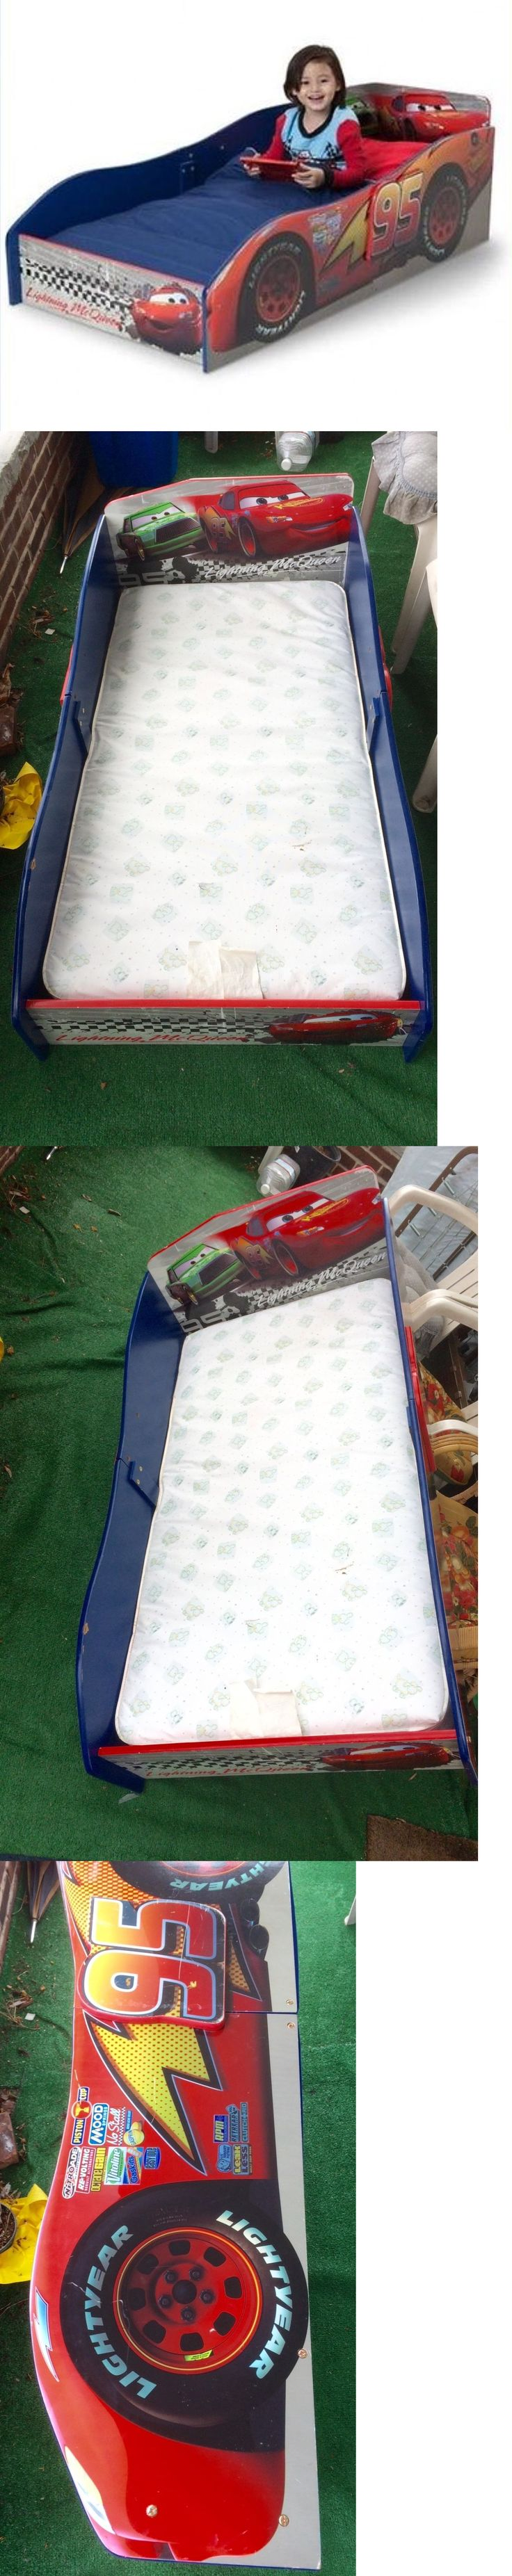 Kids Furniture: Kids Bed Boys Disney Cars Wooden Baby Children Delta Furniture Toddler Bed -> BUY IT NOW ONLY: $50.0 on eBay!